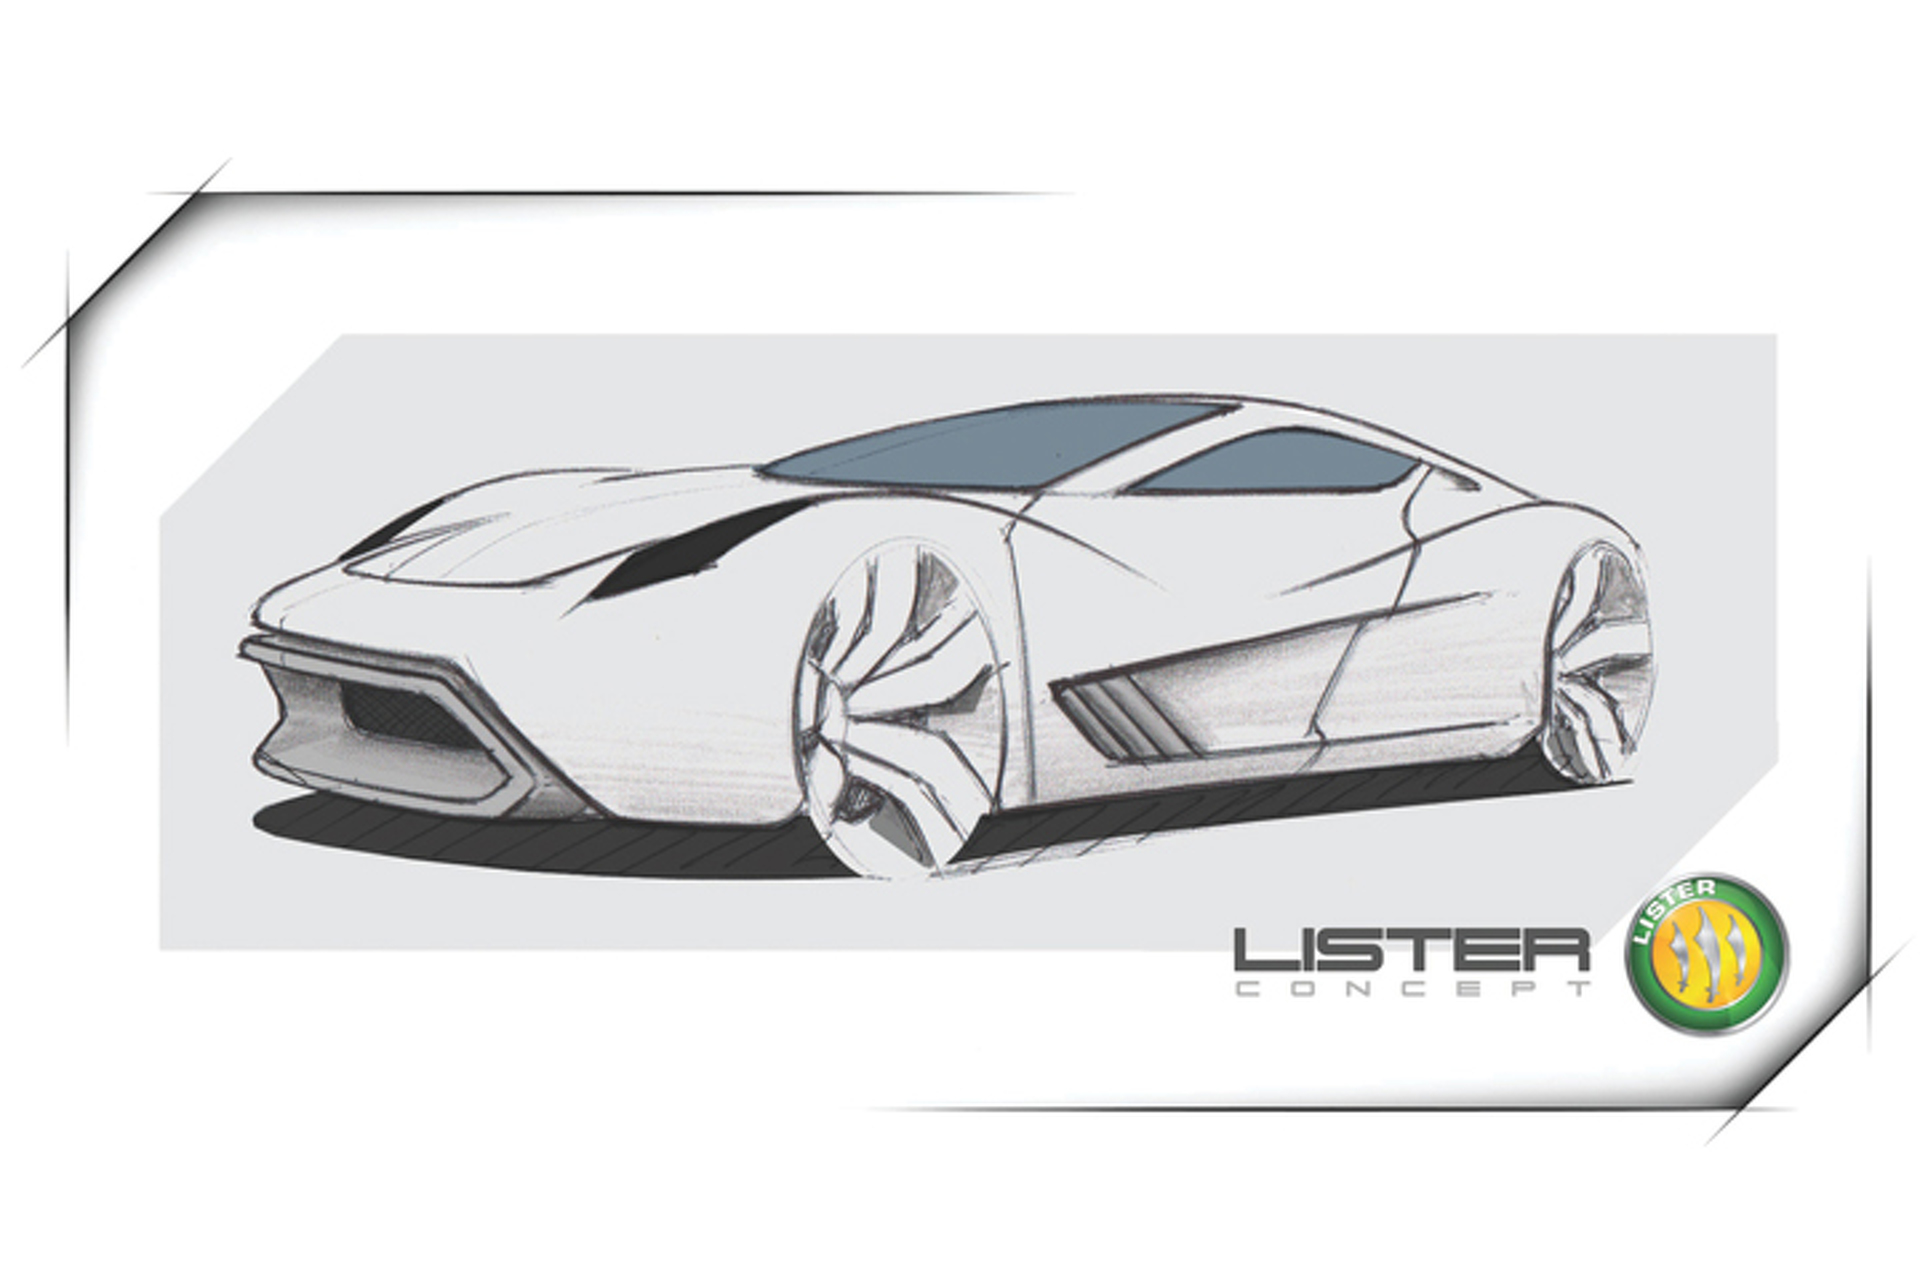 Lister Concept Could be the Next Big Hypercar